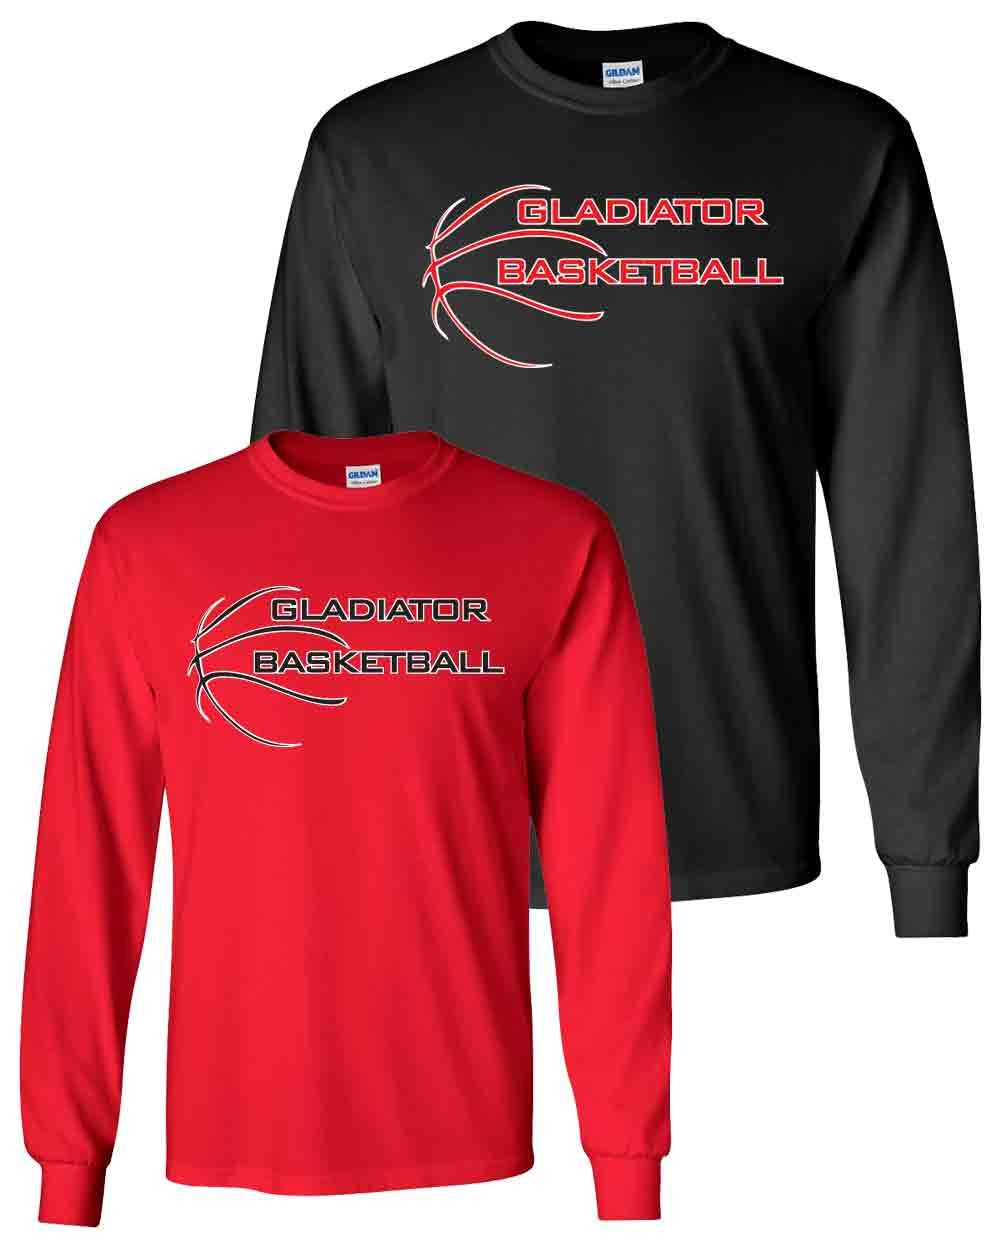 Basketball T Shirt Design Ideas basketball t shirt design ideas google search Images For Basketball Logos For T Shirts